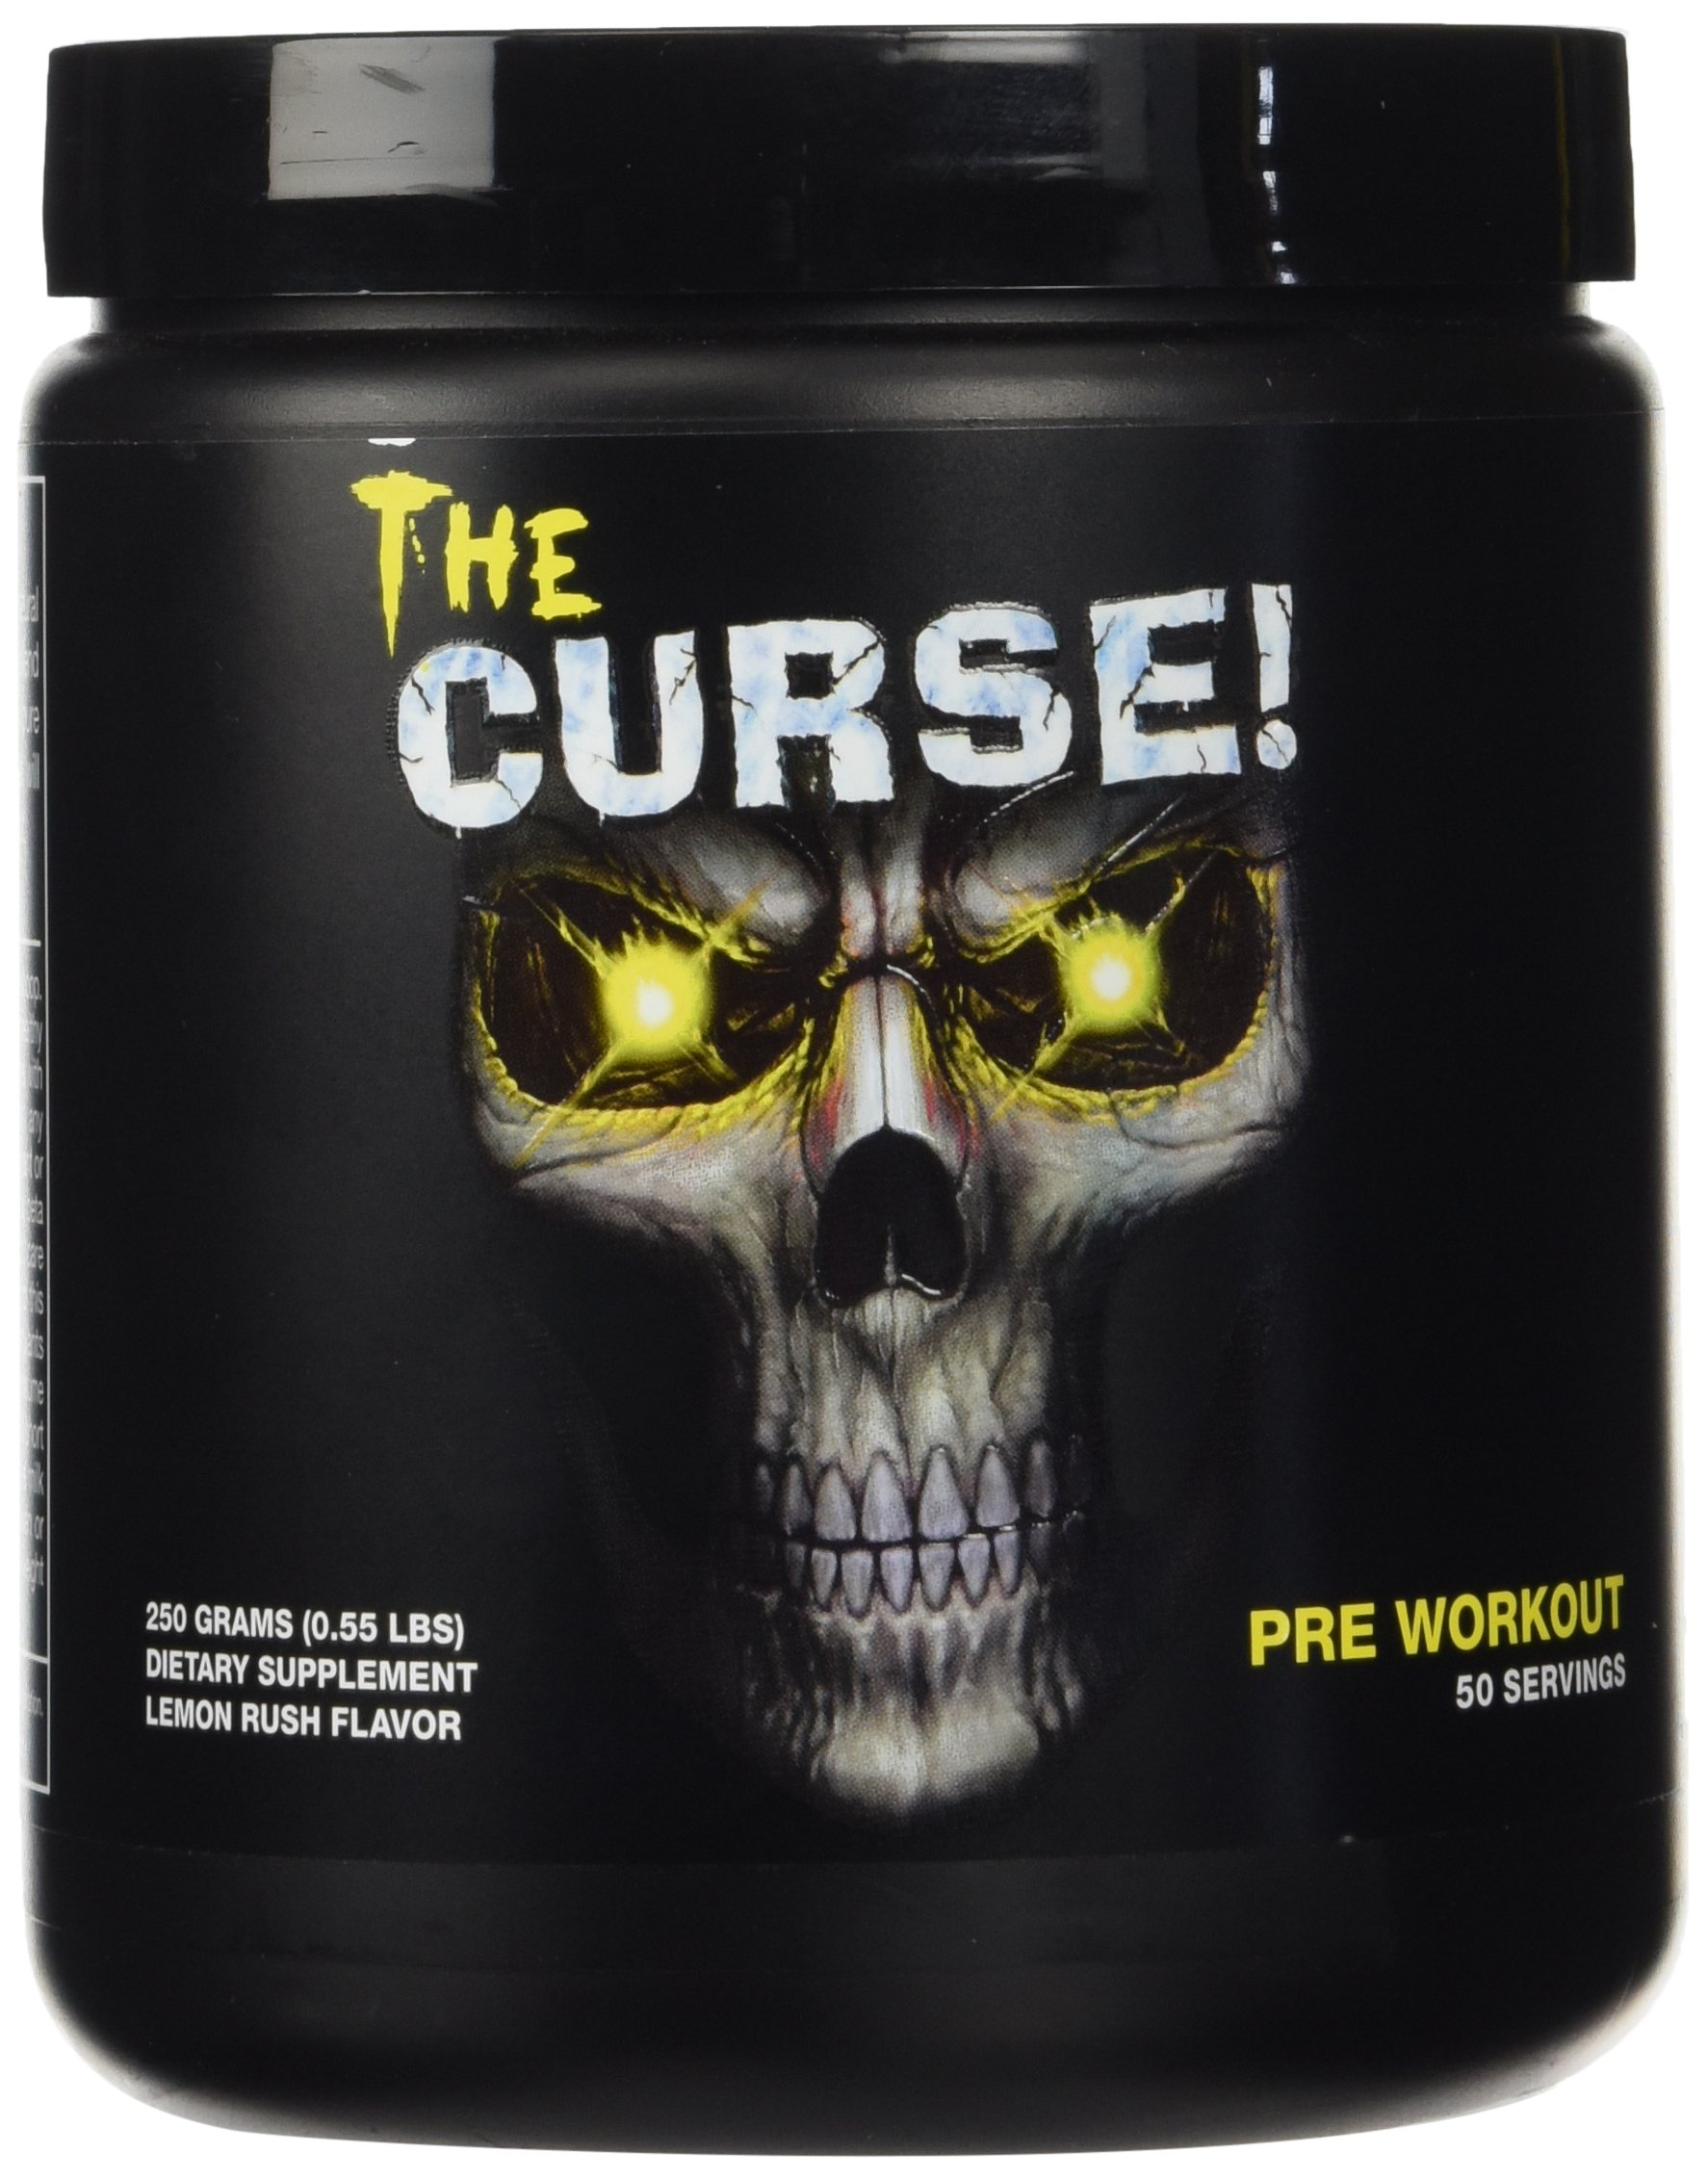 Cobra Labs The Curse Advanced Pre-Workout 50 Servings Lemon Rush 250g by Cobra Labs